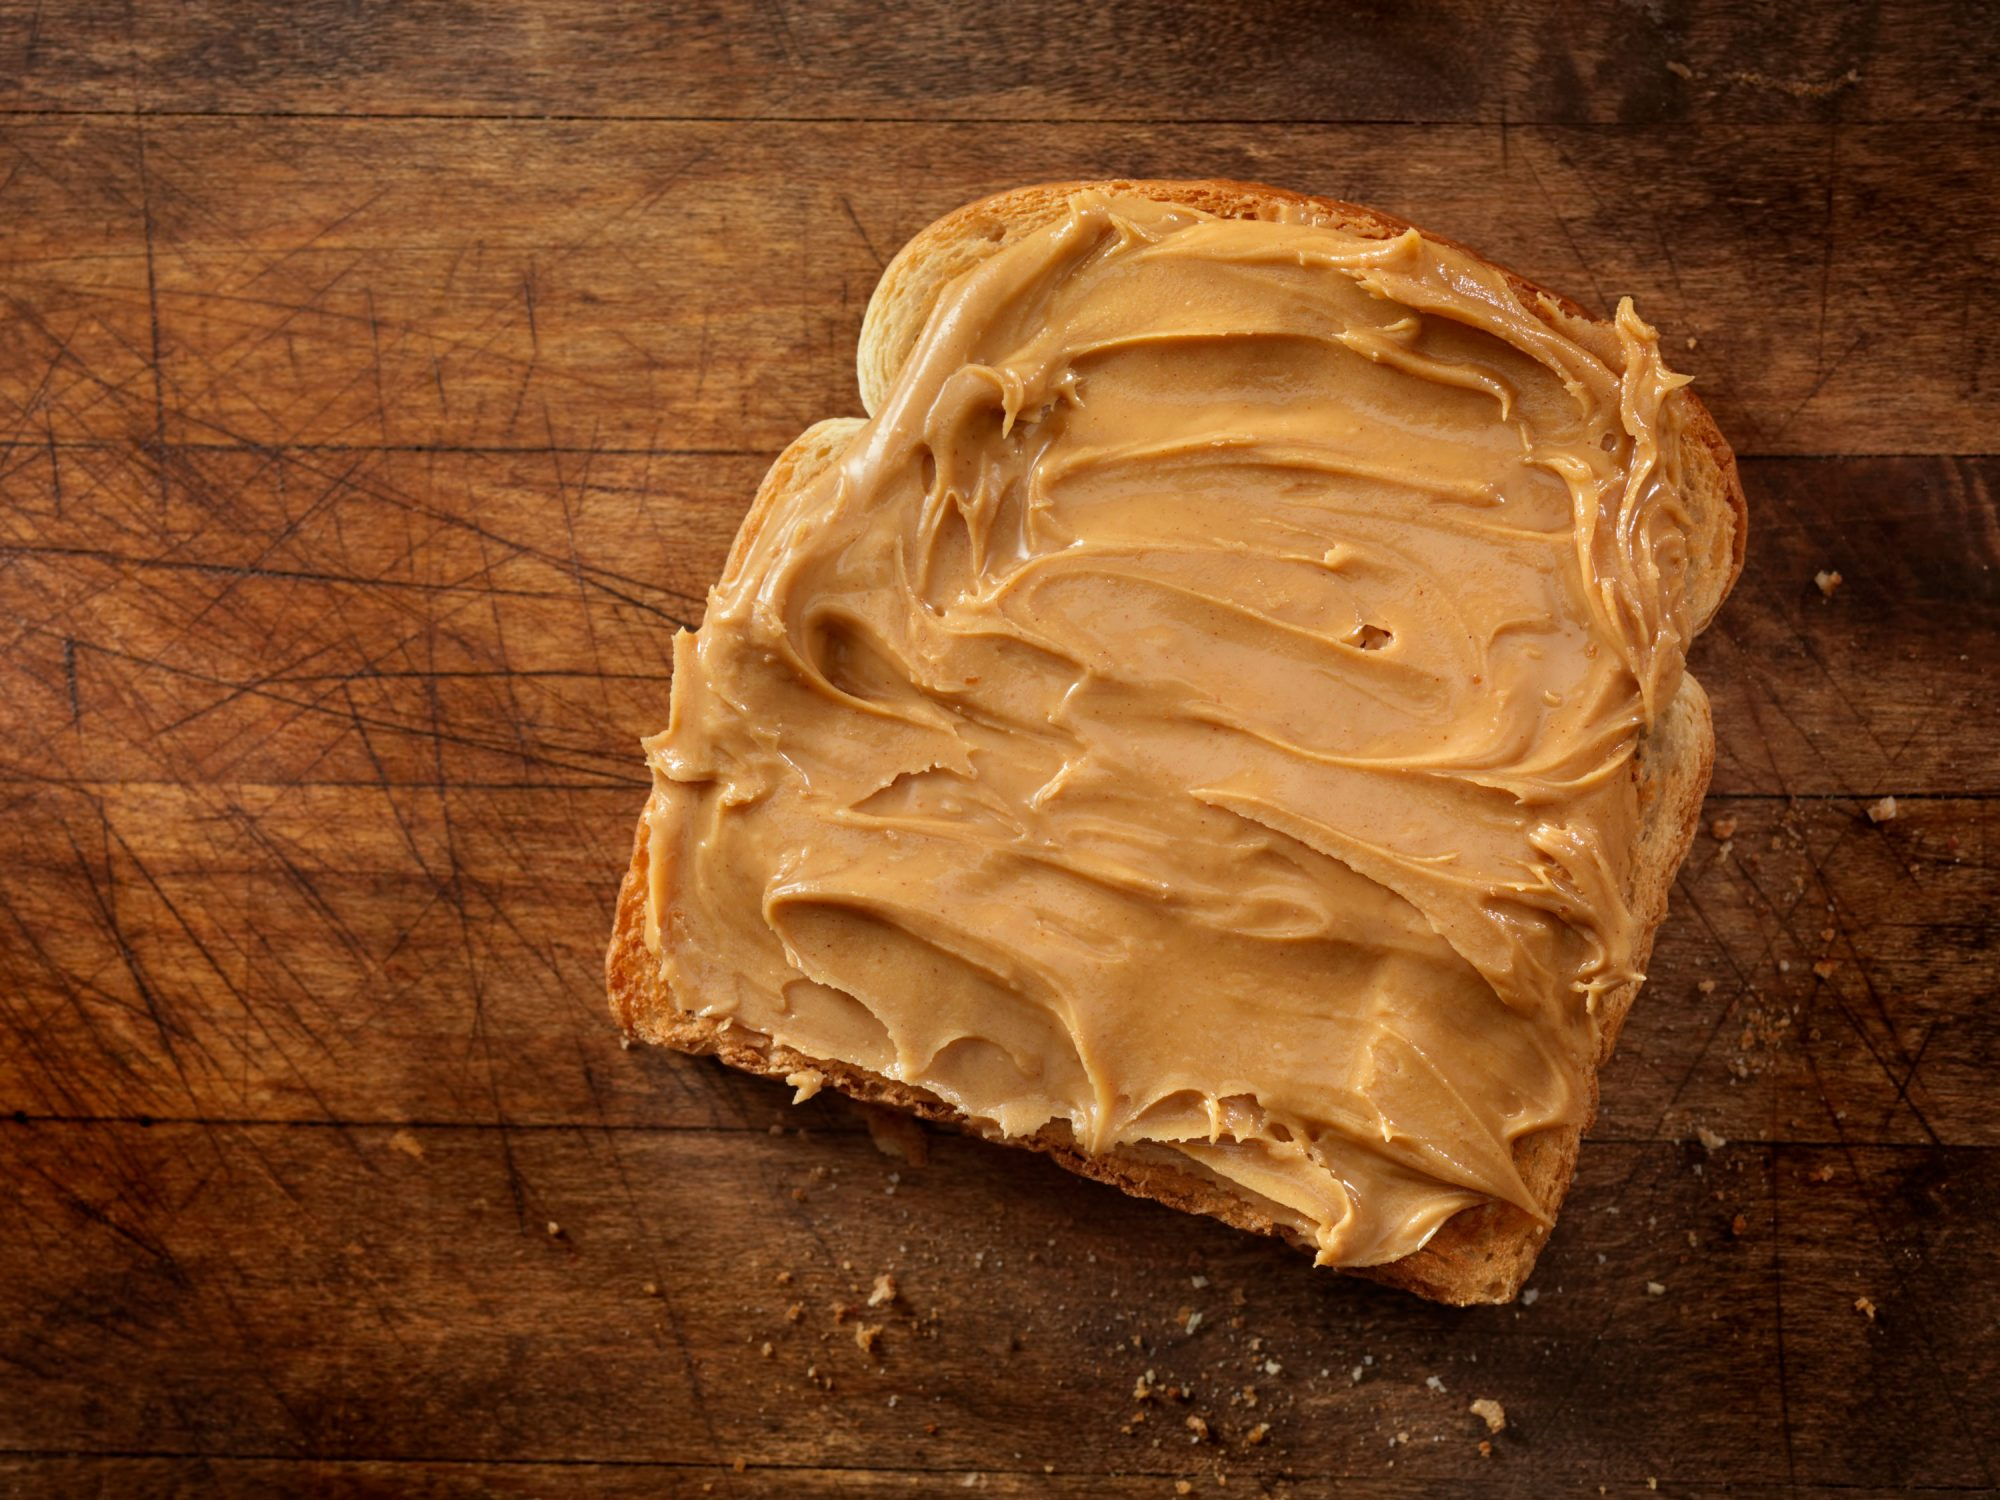 Peanut Butter on Bread Slice